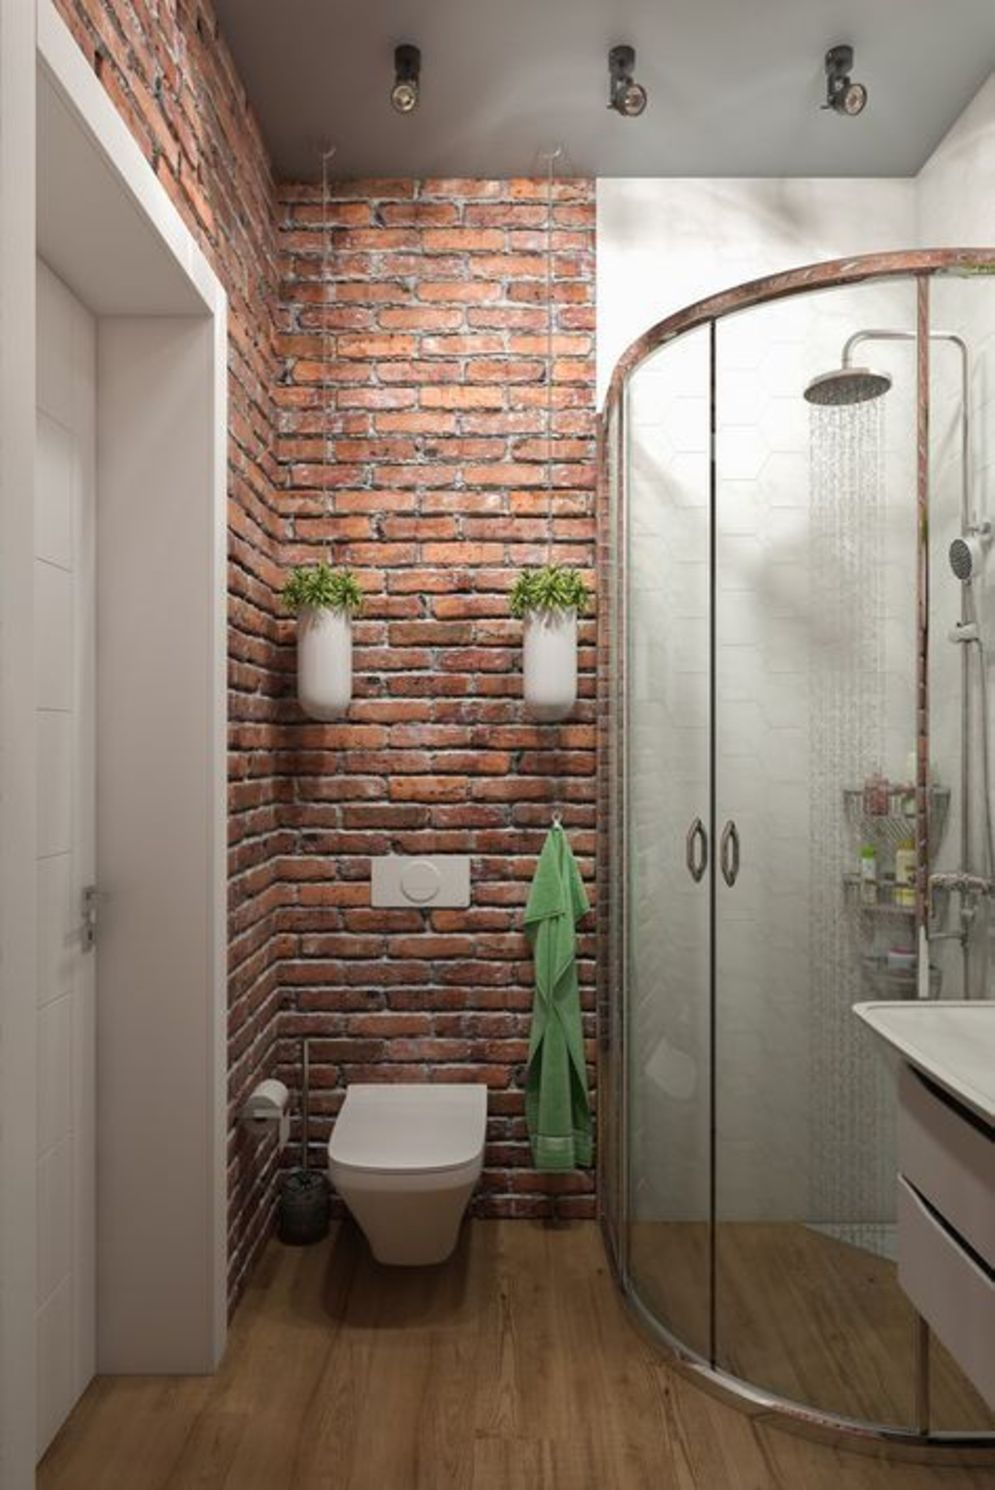 Modern Rustic Bathroom Styles Showing Amazing Viewpoint Of Brick Wall Decoration Image 29 Shairoom Com Small Bathroom Makeover Brick Bathroom Brick Tiles Bathroom